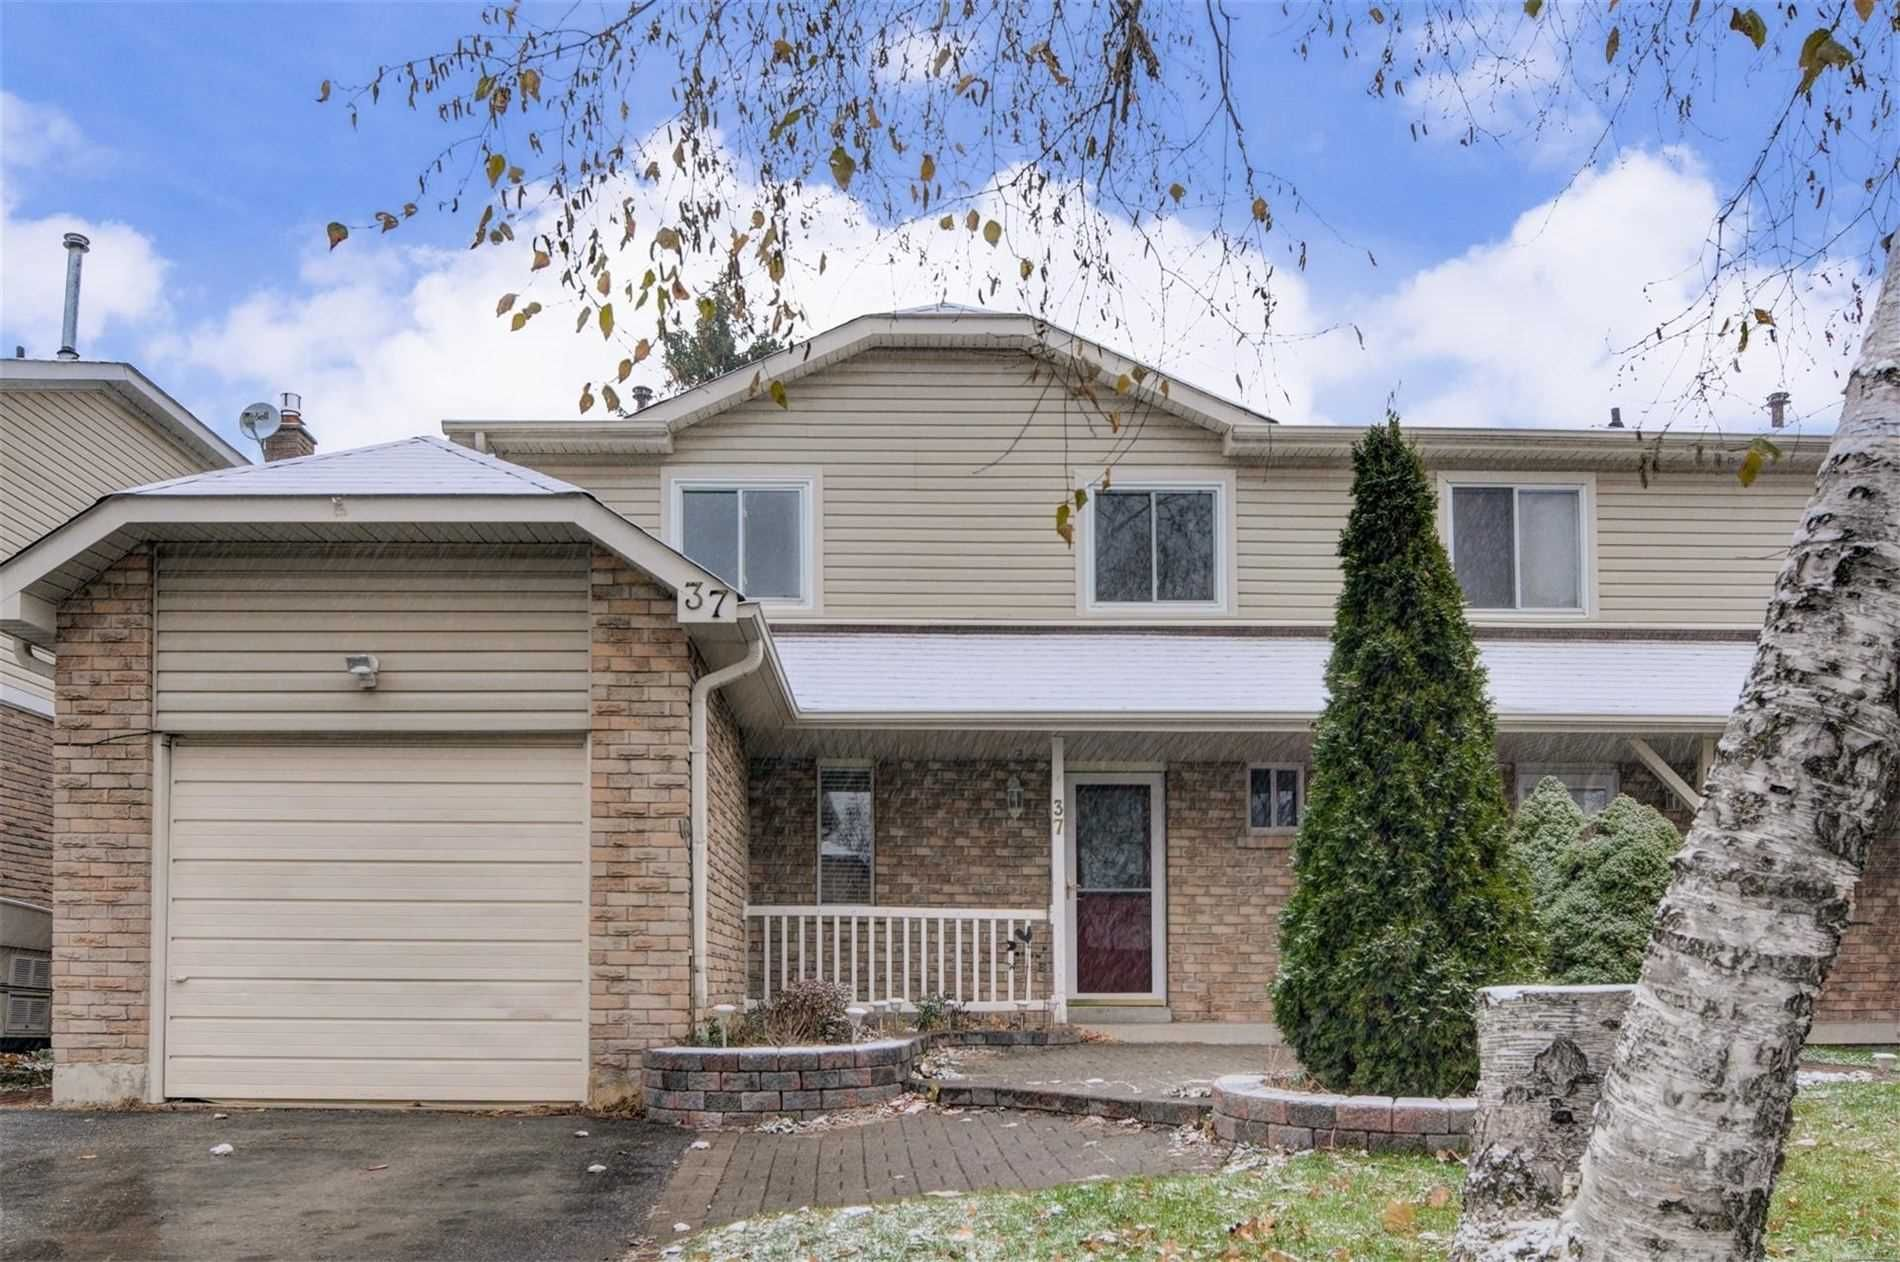 Main Photo: 37 Goldring Drive in Whitby: Lynde Creek House (2-Storey) for sale : MLS®# E4672338